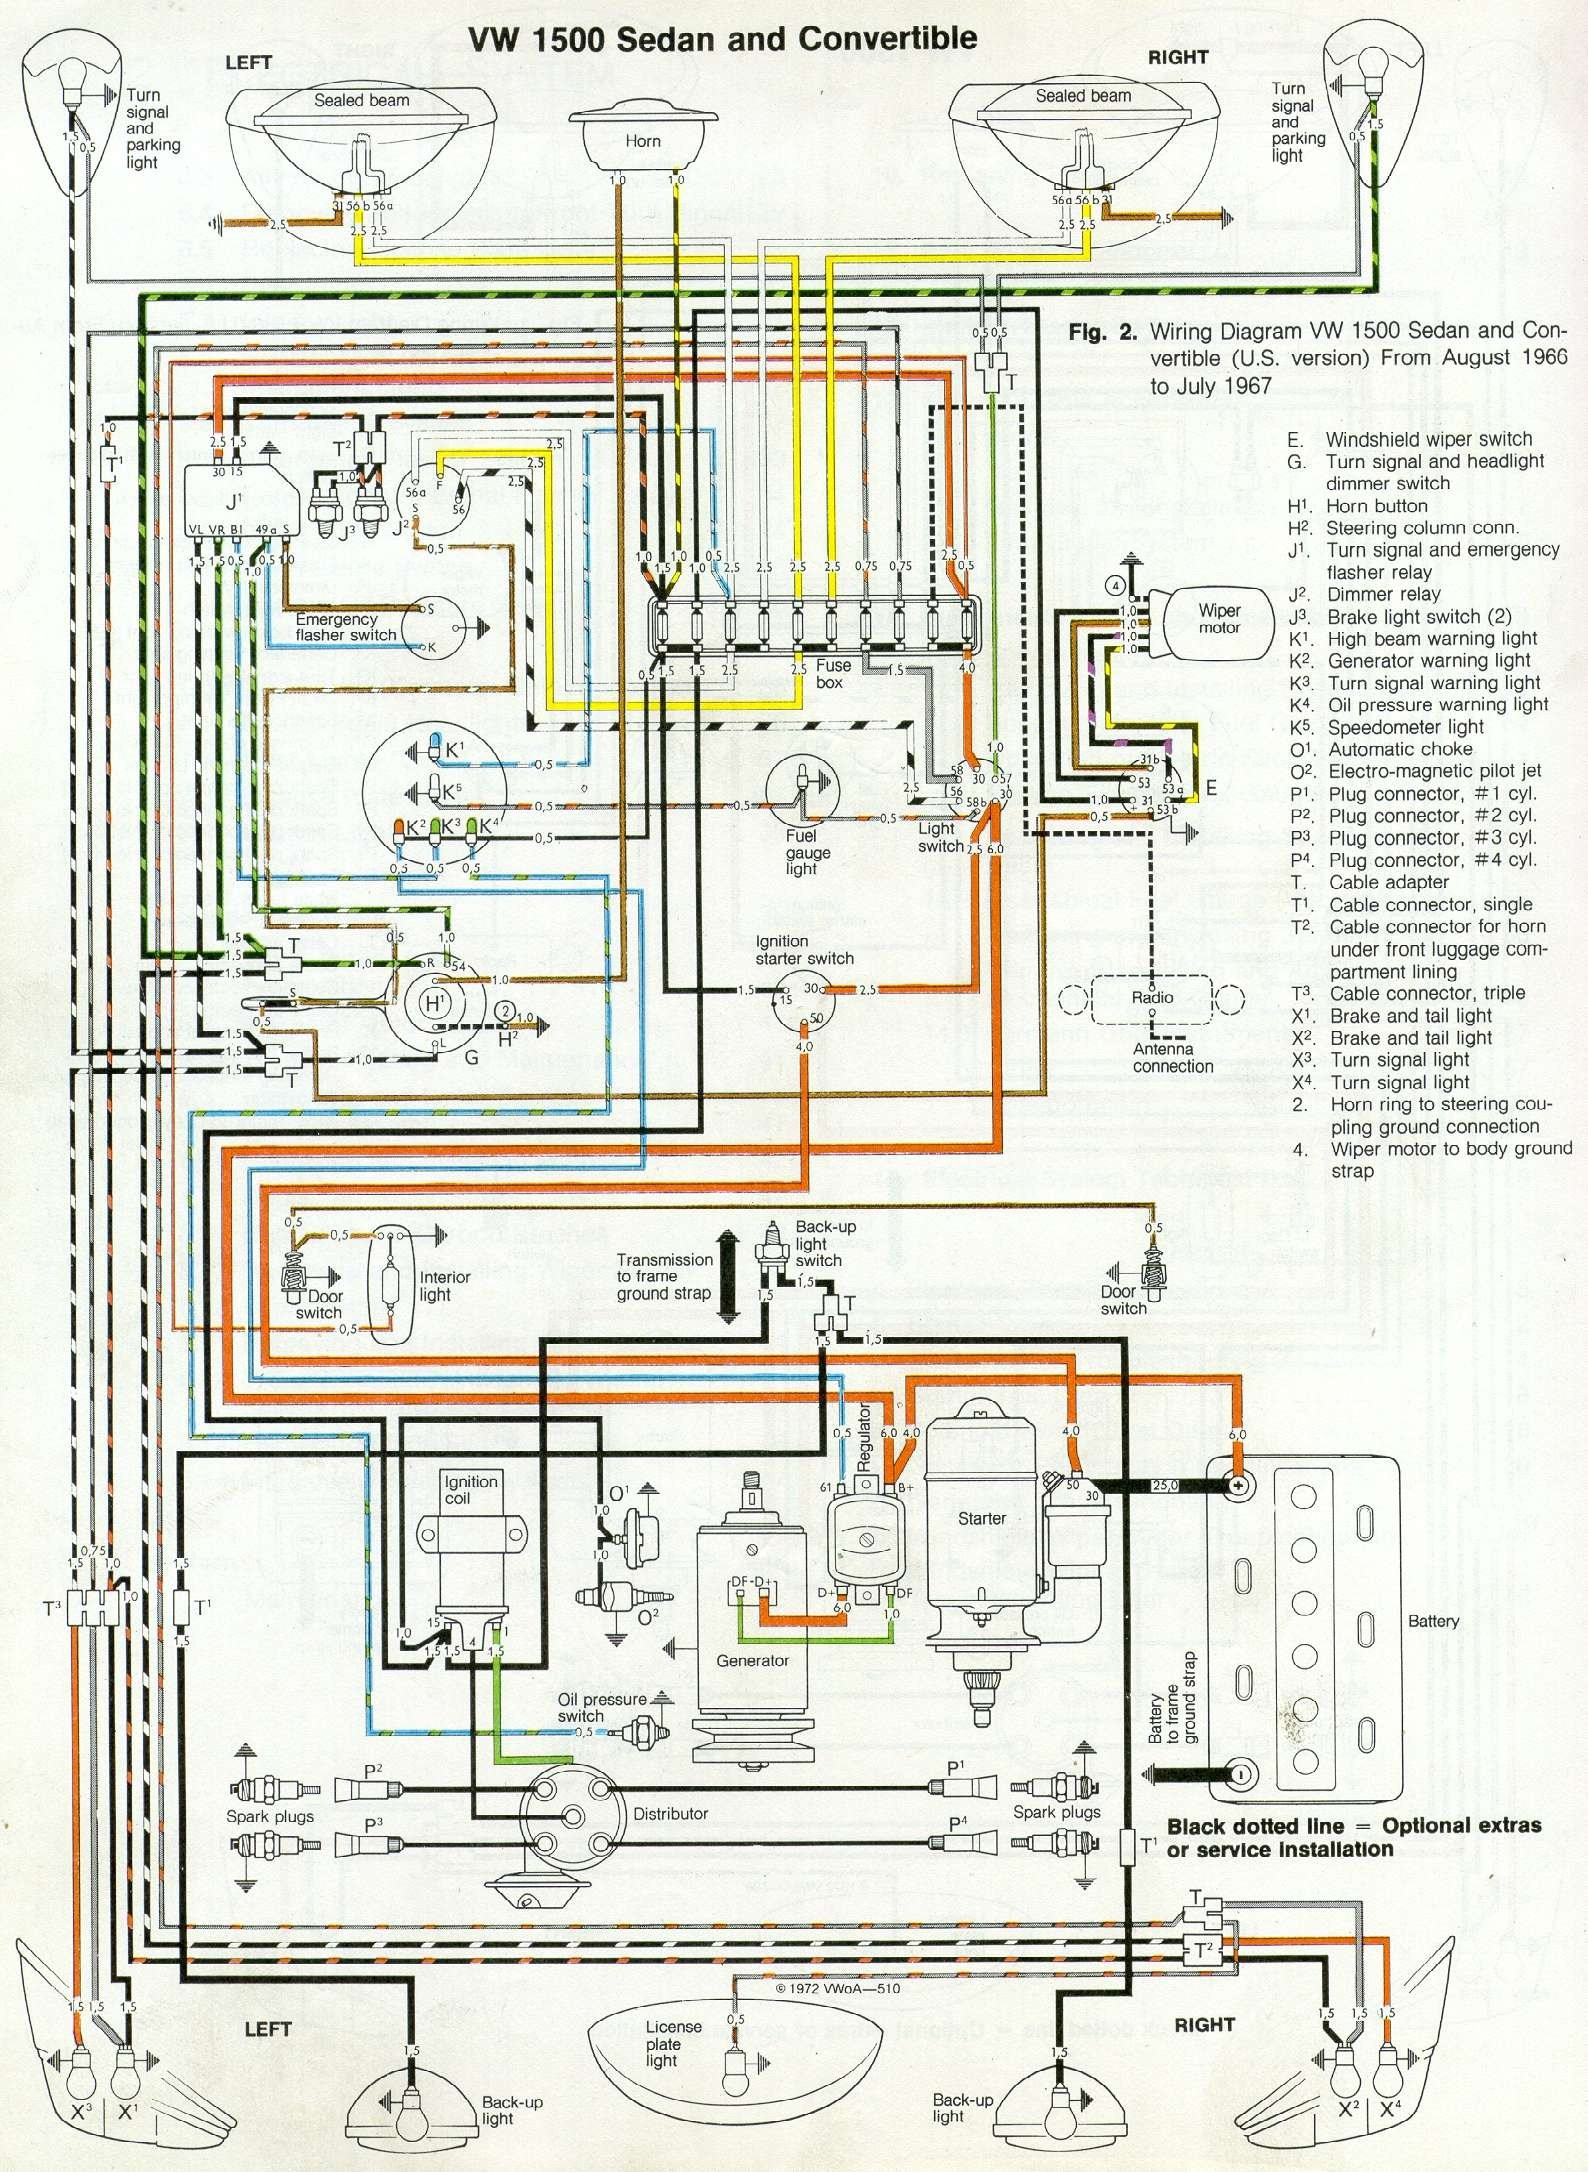 air cooled vw engine wiring diagram schematics wiring diagrams u2022 rh orwellvets co air cooled vw engine wiring diagram air cooled vw alternator wiring diagram